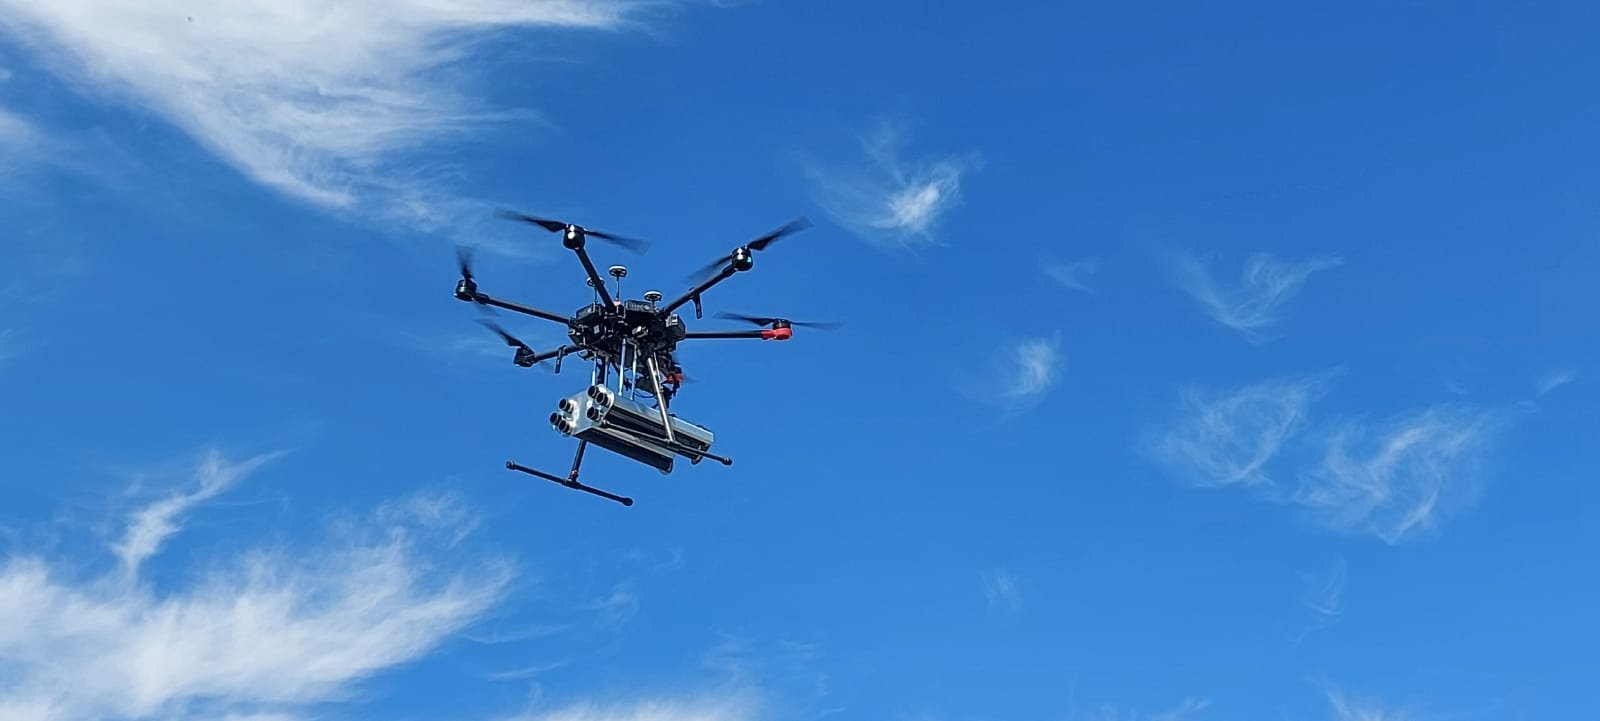 A mini drone carrying Troy Teknoloji Savunma ammunition is seen in the photo provided on May 16, 2021. (Photo by Troy Teknoloji Savunma via AA)